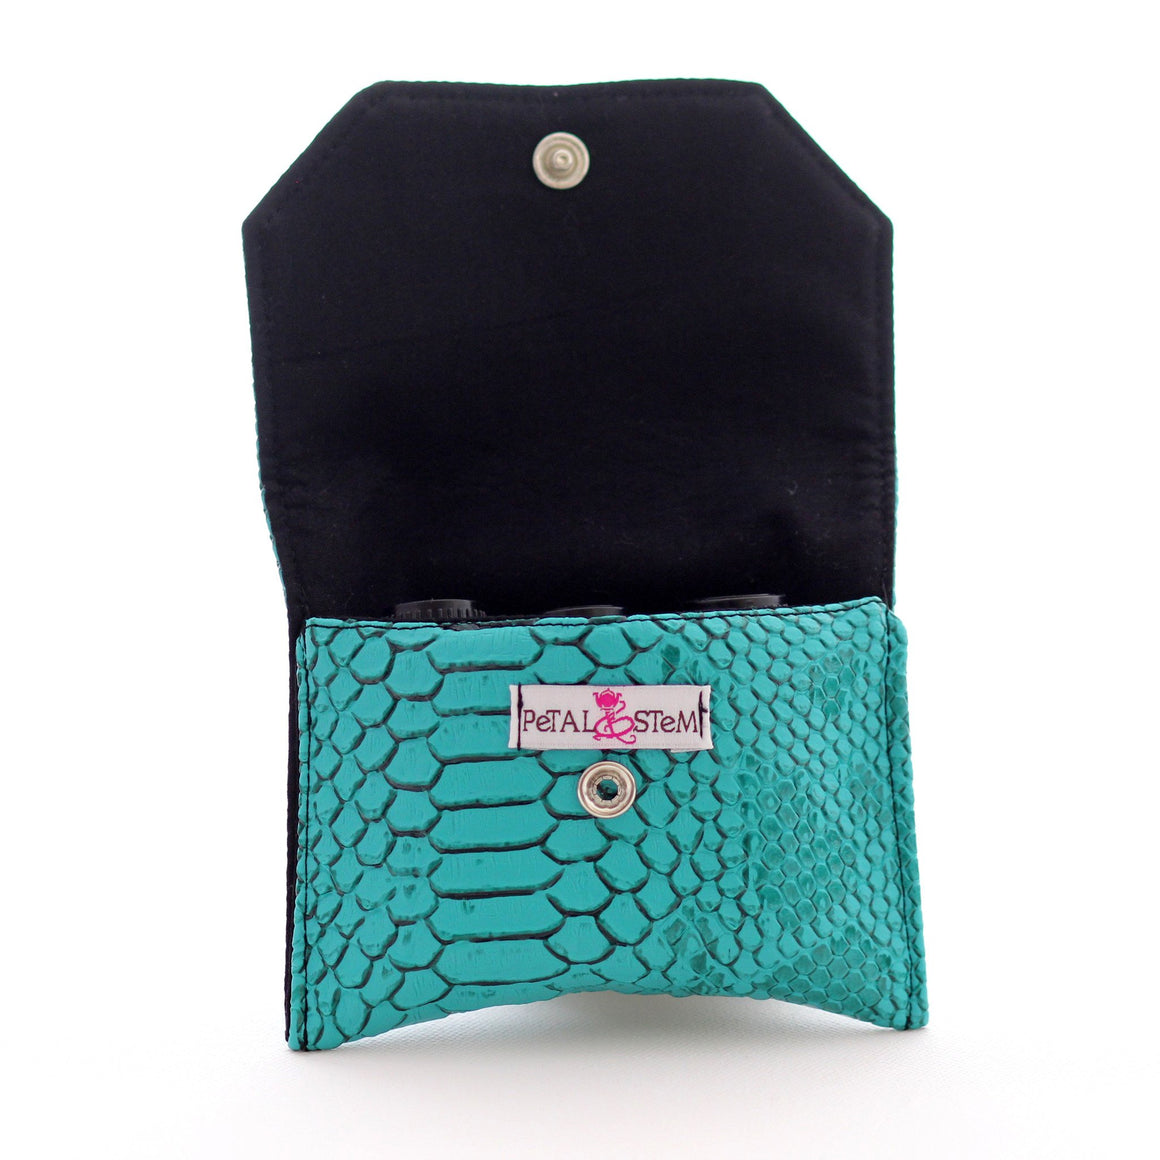 Essential Oil Bag (small) Snake Skin Faux Turquoise - Holds your most important oils - Petal and Stem